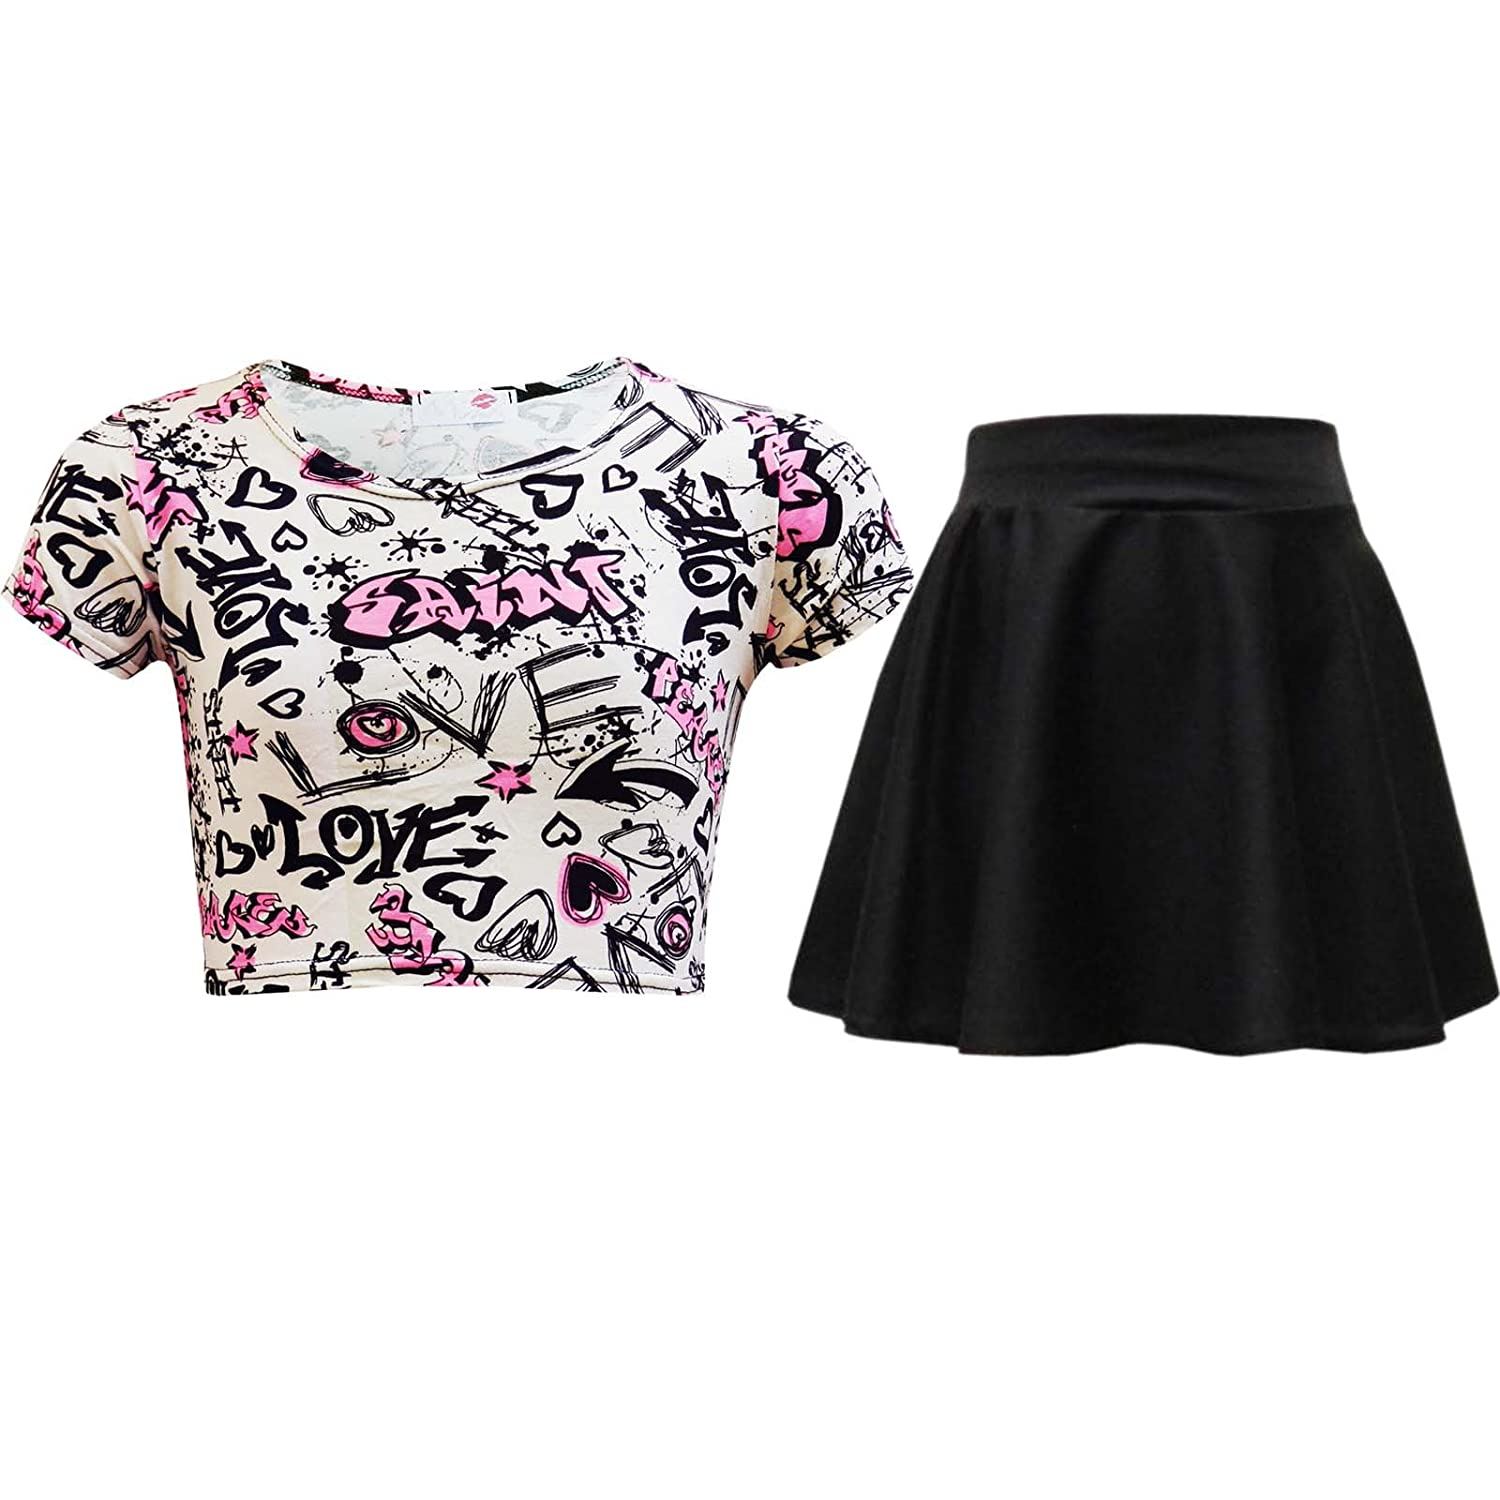 f783971c04961d Amazon.com  Kids Girls Love Graffiti Crop Top   Black Skater Skirt Set 7 8  9 10 11 12 13 Yr  Clothing